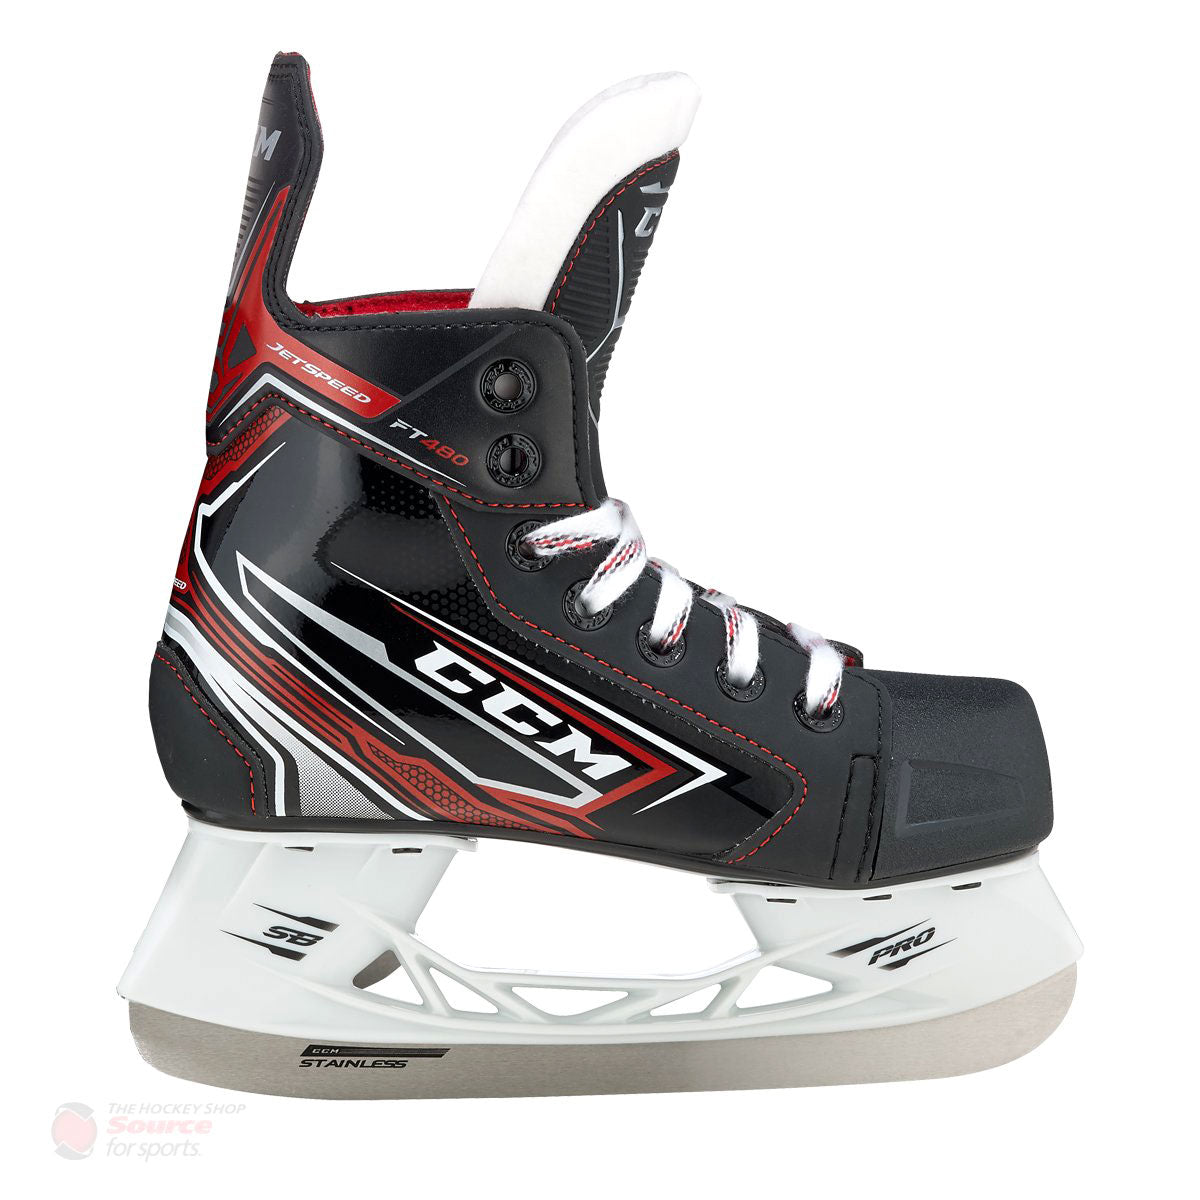 CCM Jetspeed FT480 Youth Hockey Skates